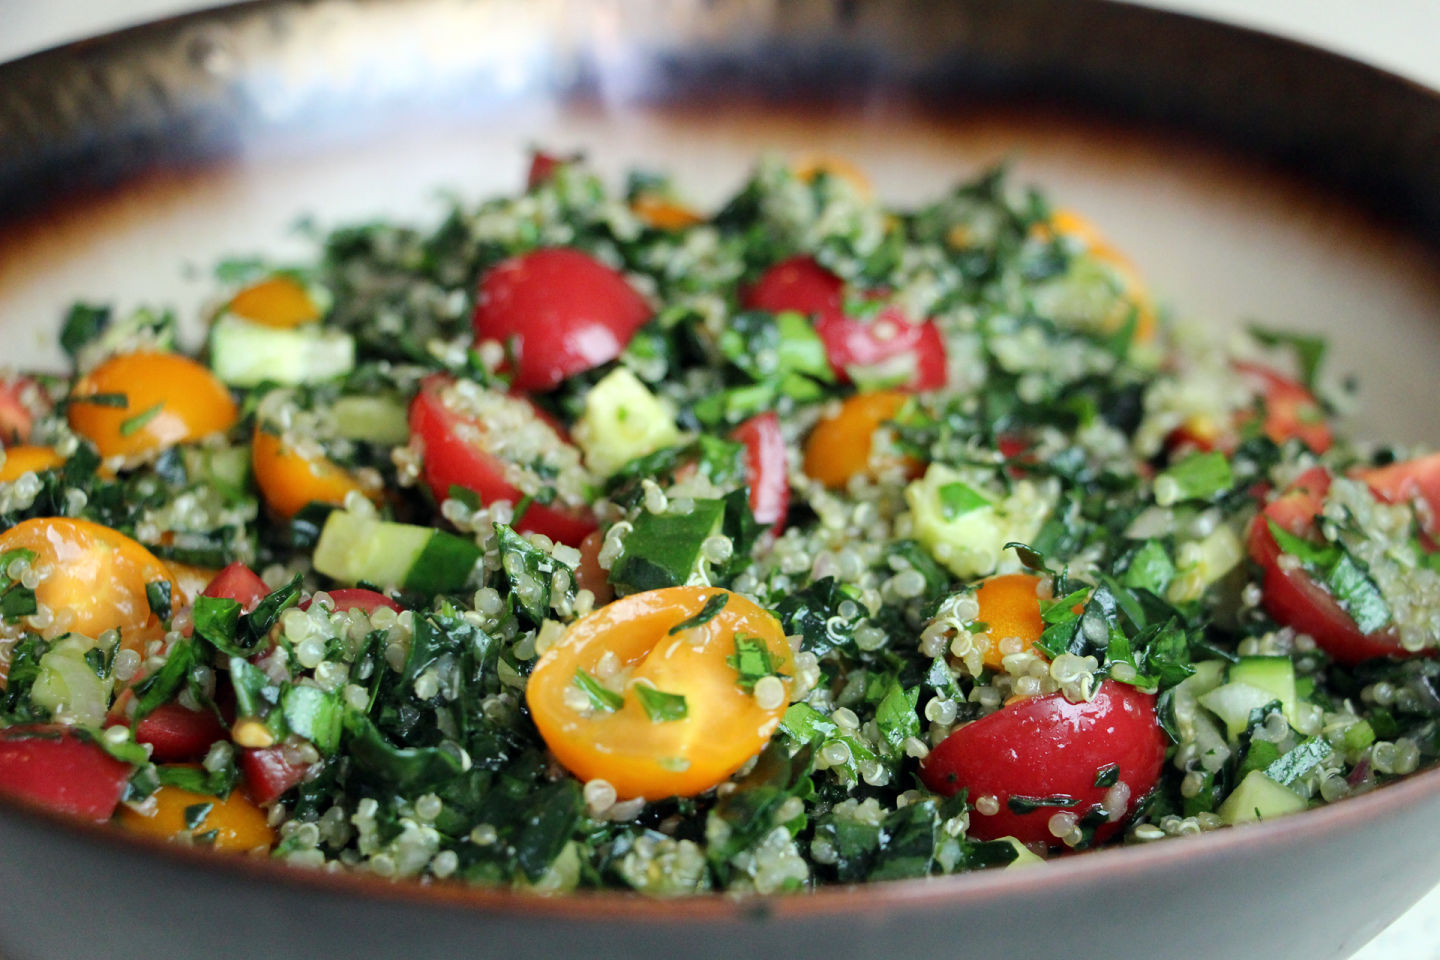 Healthy End-of-Summer Mediterranean-Style Kale and Quinoa Tabouli Salad